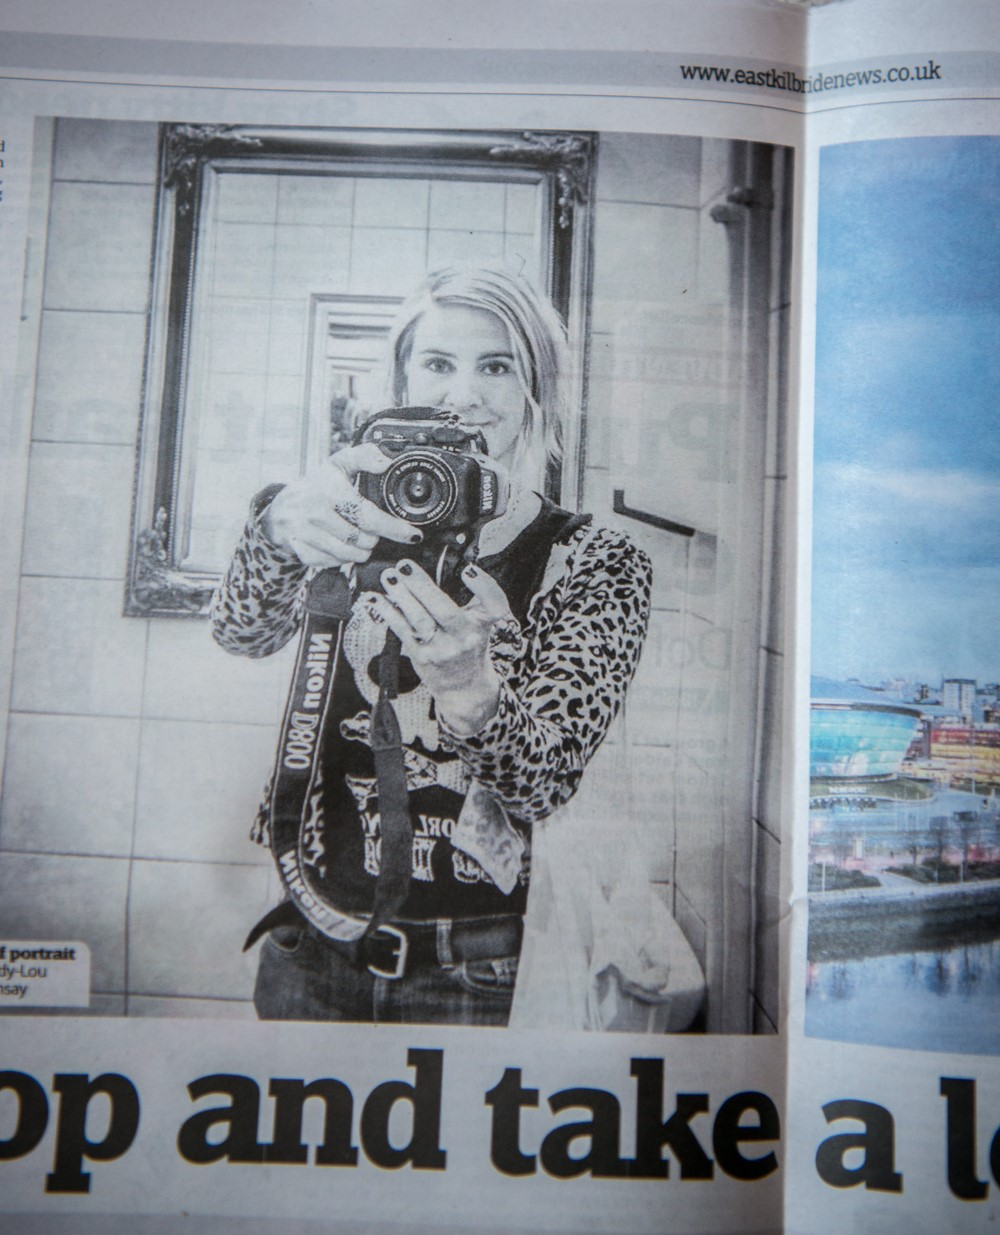 East Kilbride News piece on Cindy Lou Ramsay Photography